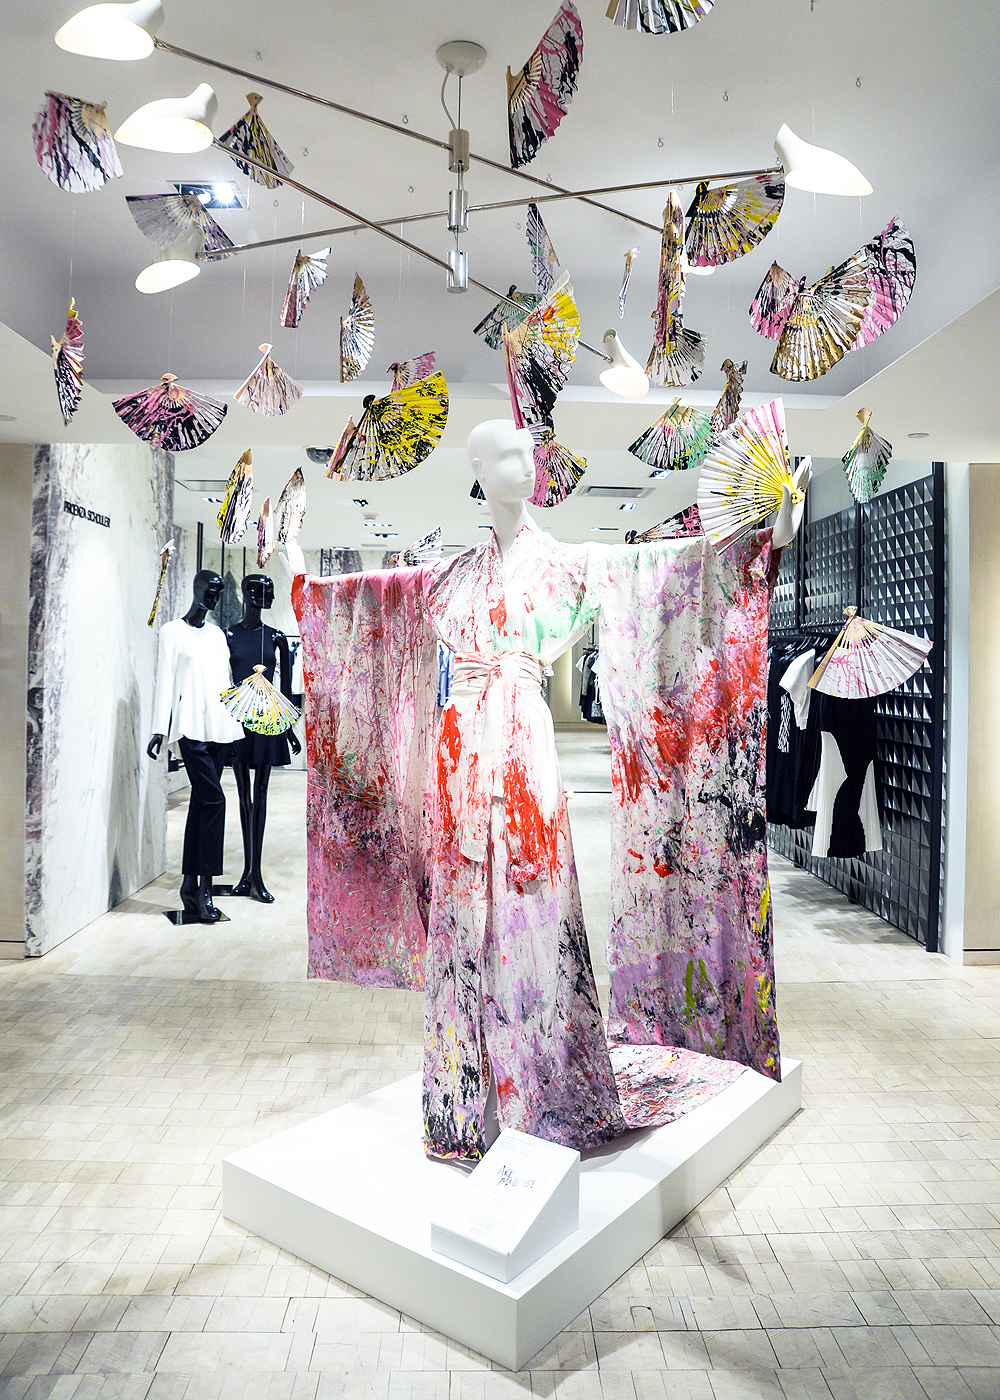 Andrea Mary Marshall - Fashion Fans, 2014 / photo courtesy of Bergdorf Goodman